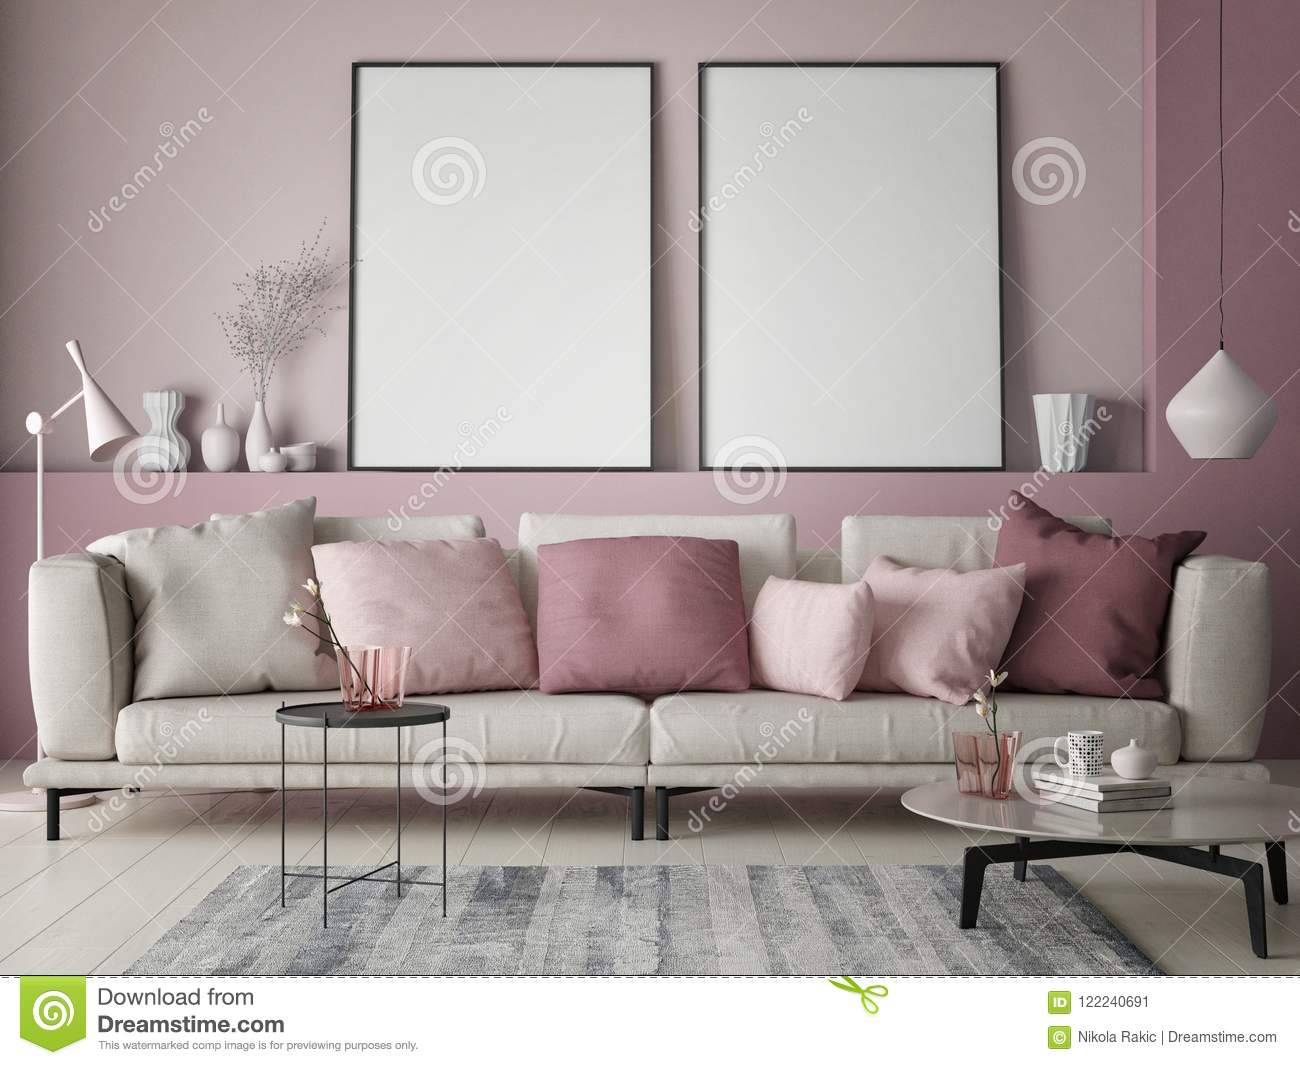 Wohnzimmer Modern Pastel Mock Up Poster On Rose Wall In Hipster Living Room Pastel Colored